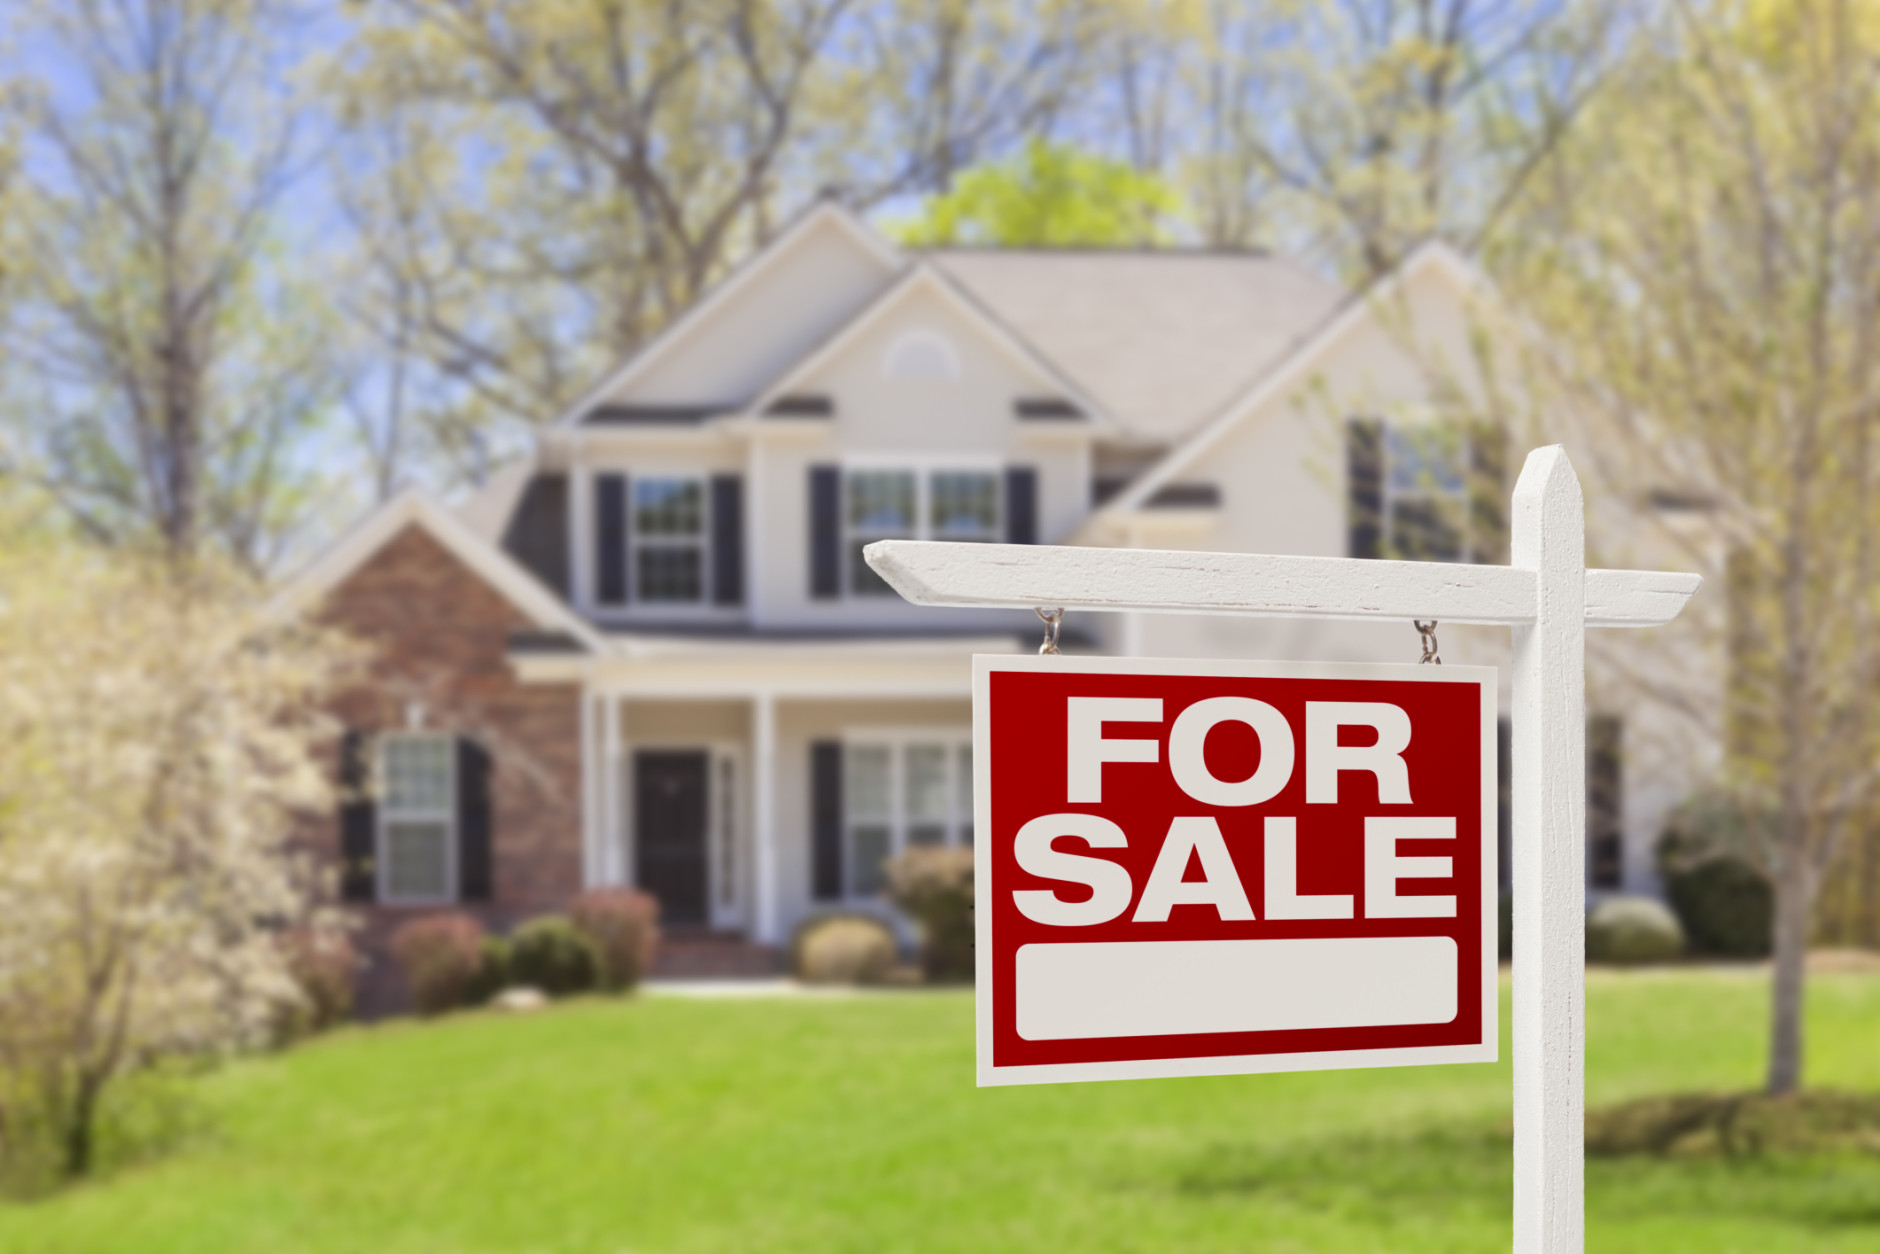 What's the best day to list your home for sale?